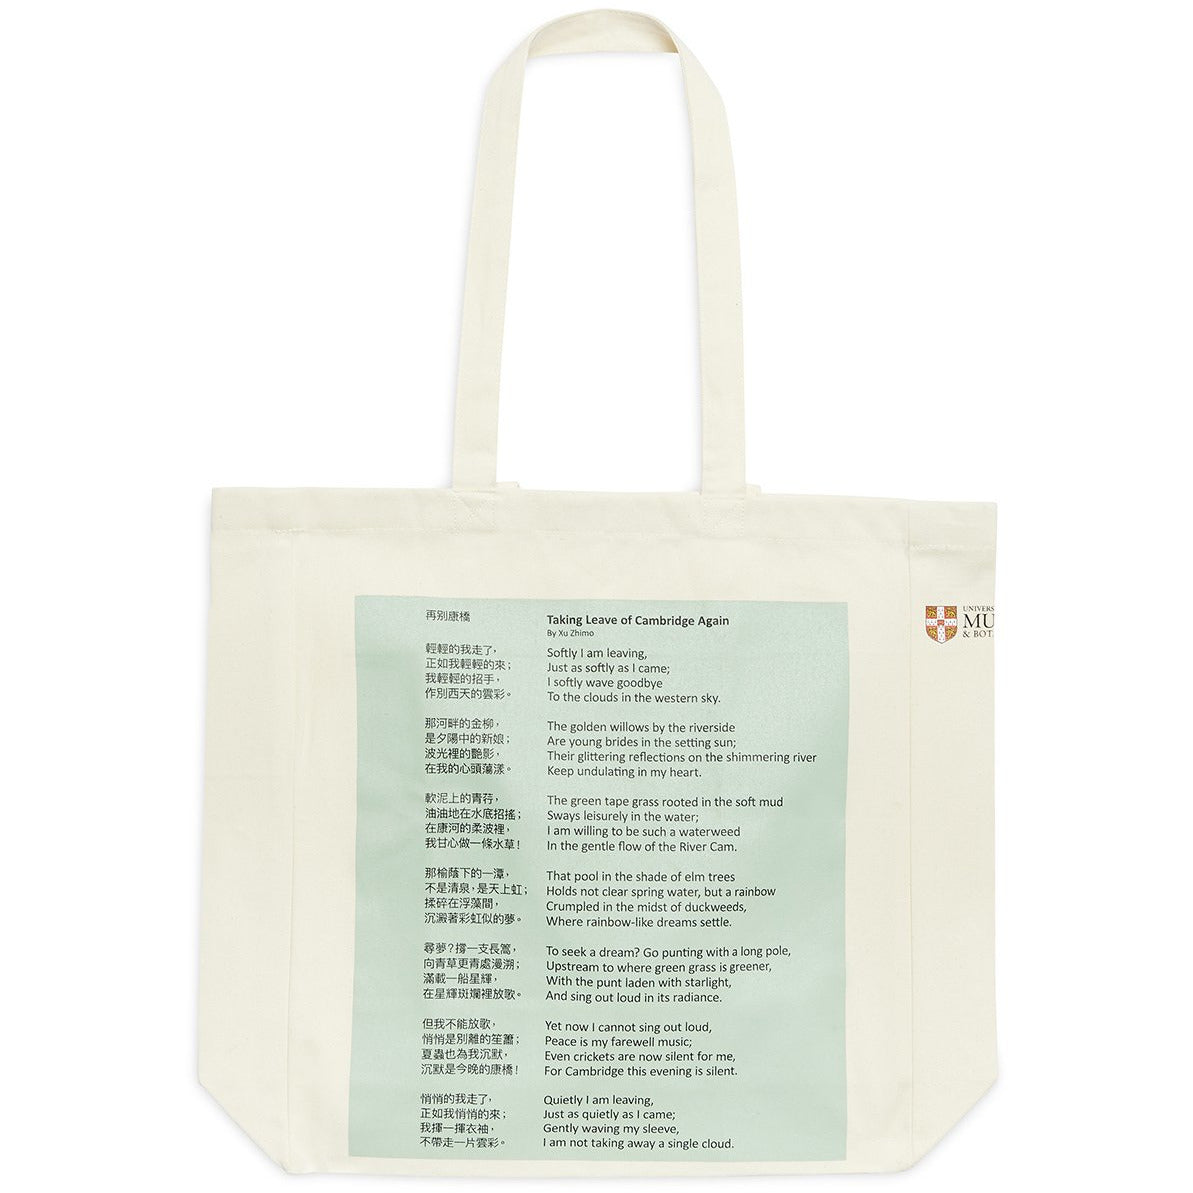 Featured image for the project: Xu Zhimo, Taking Leave of Cambridge Again - Tote bag